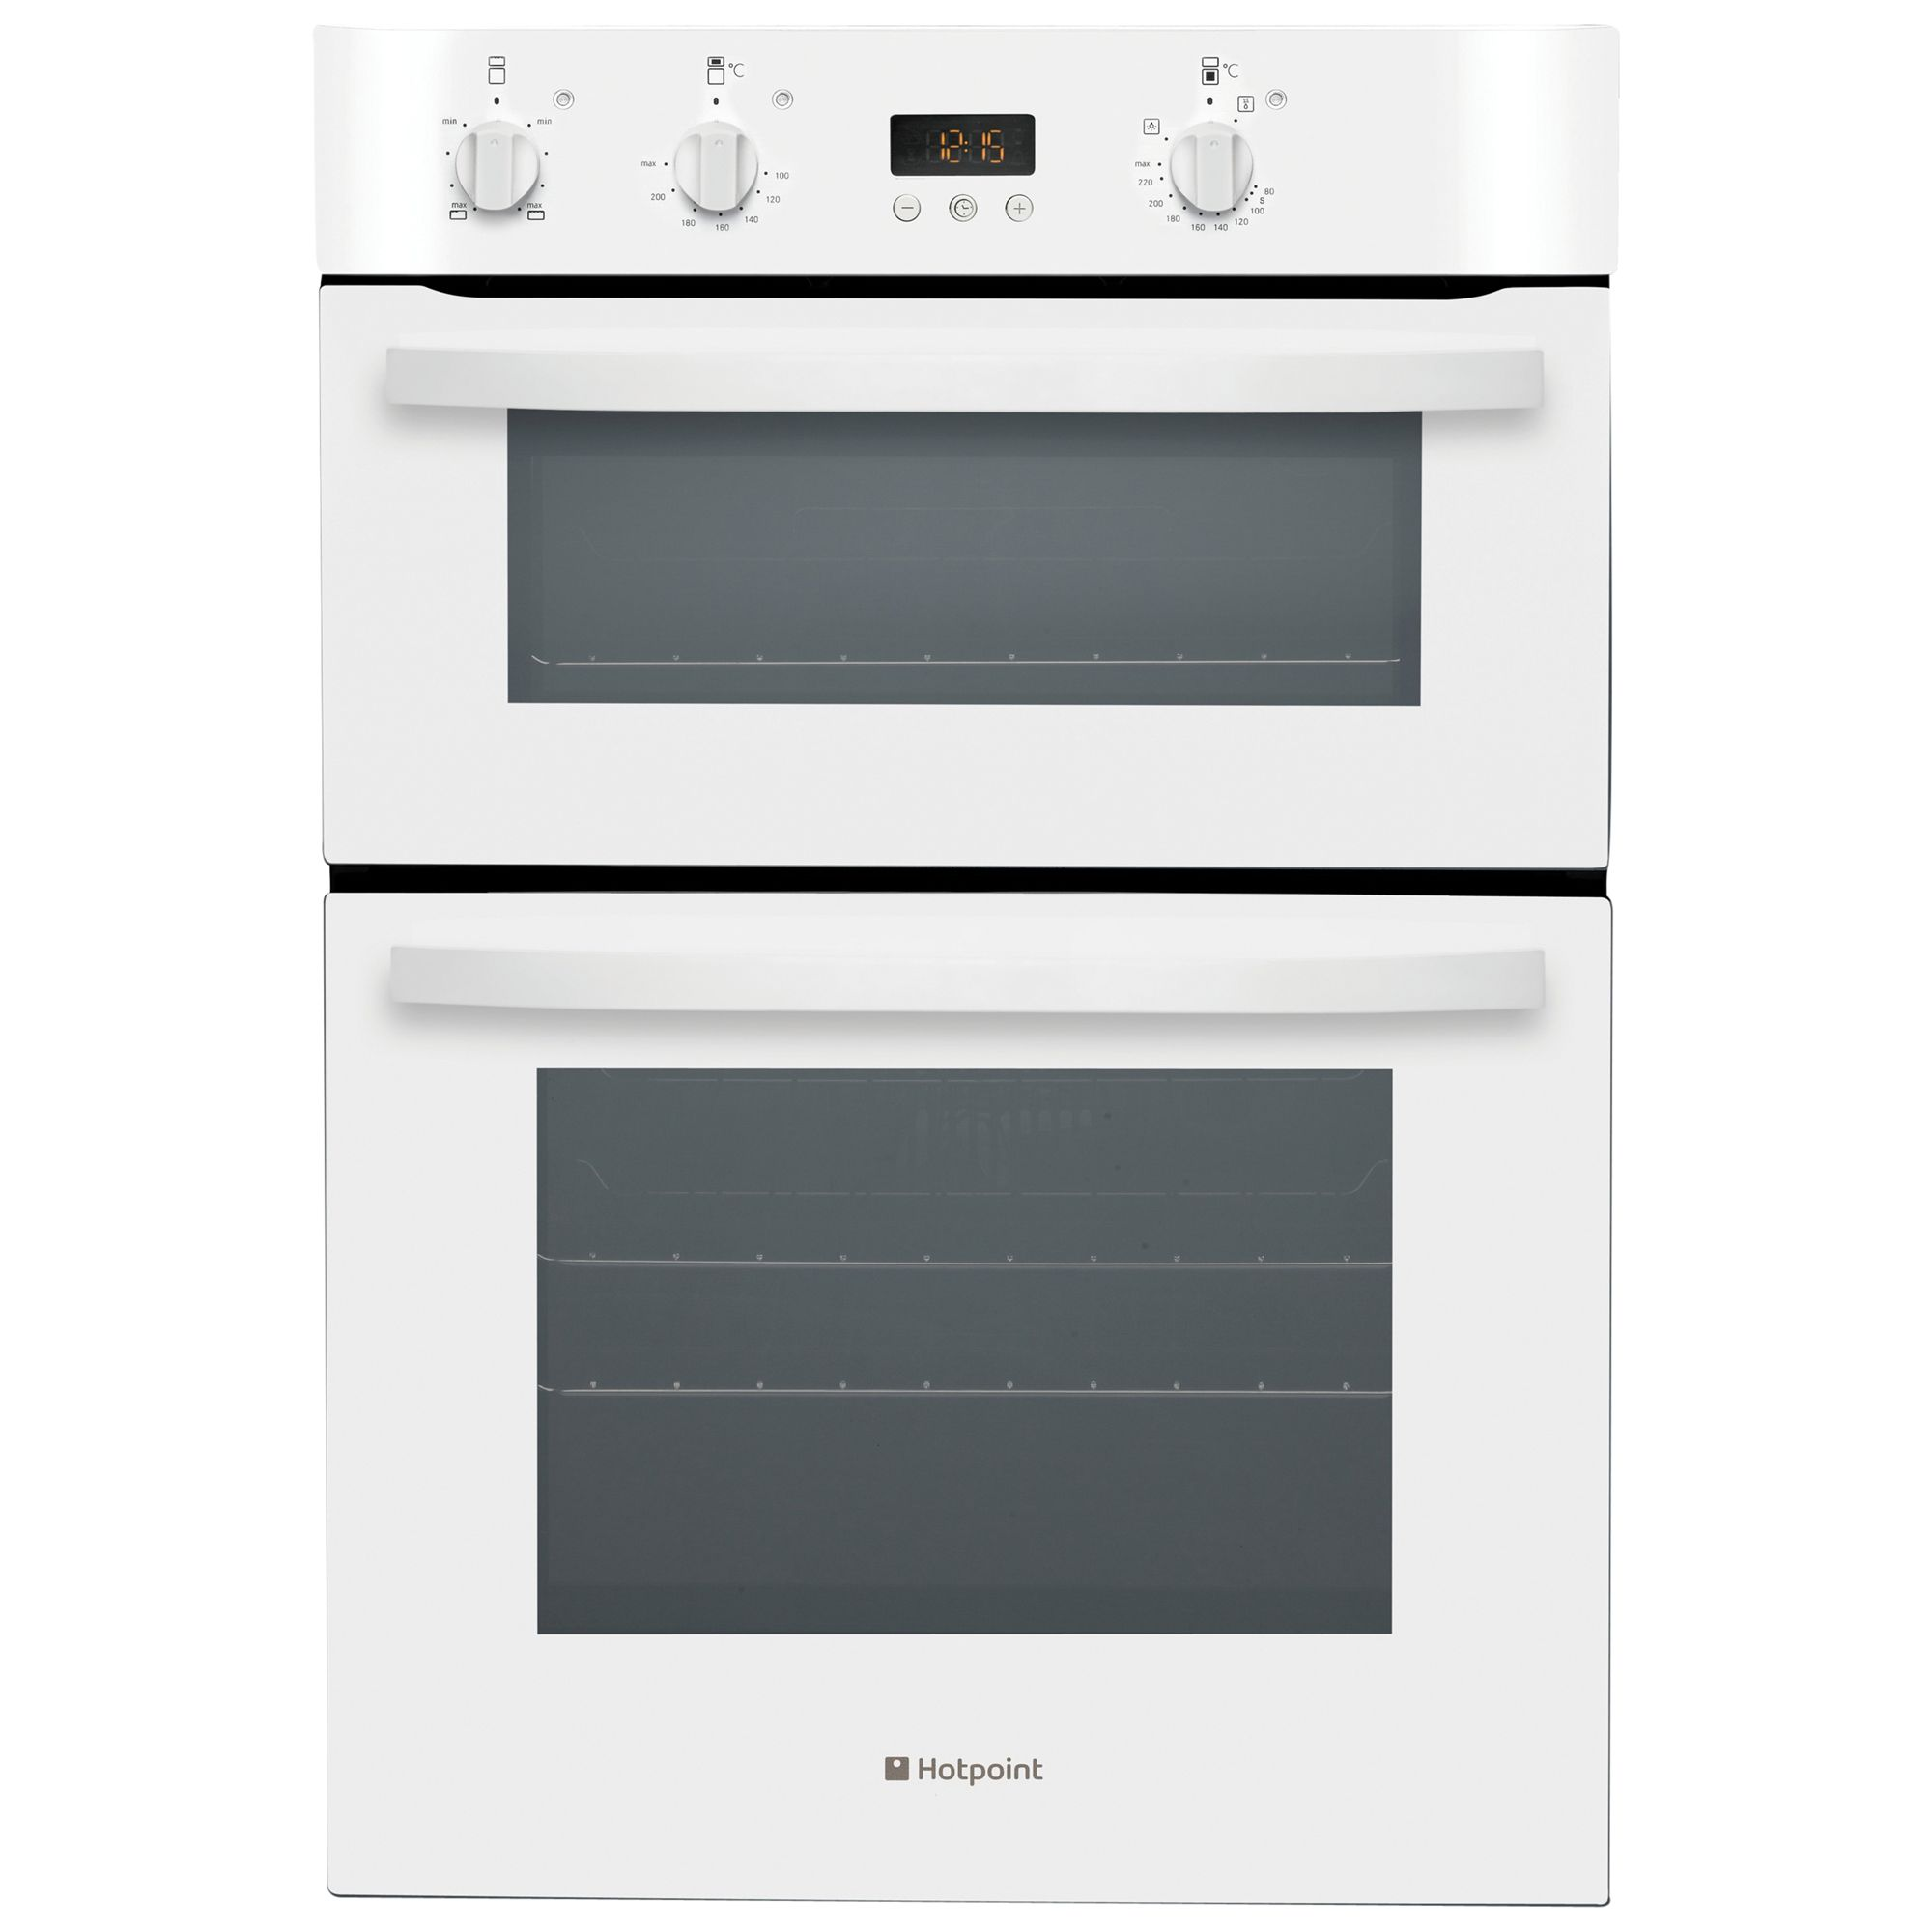 Hotpoint DH53WS Double Electric Oven White